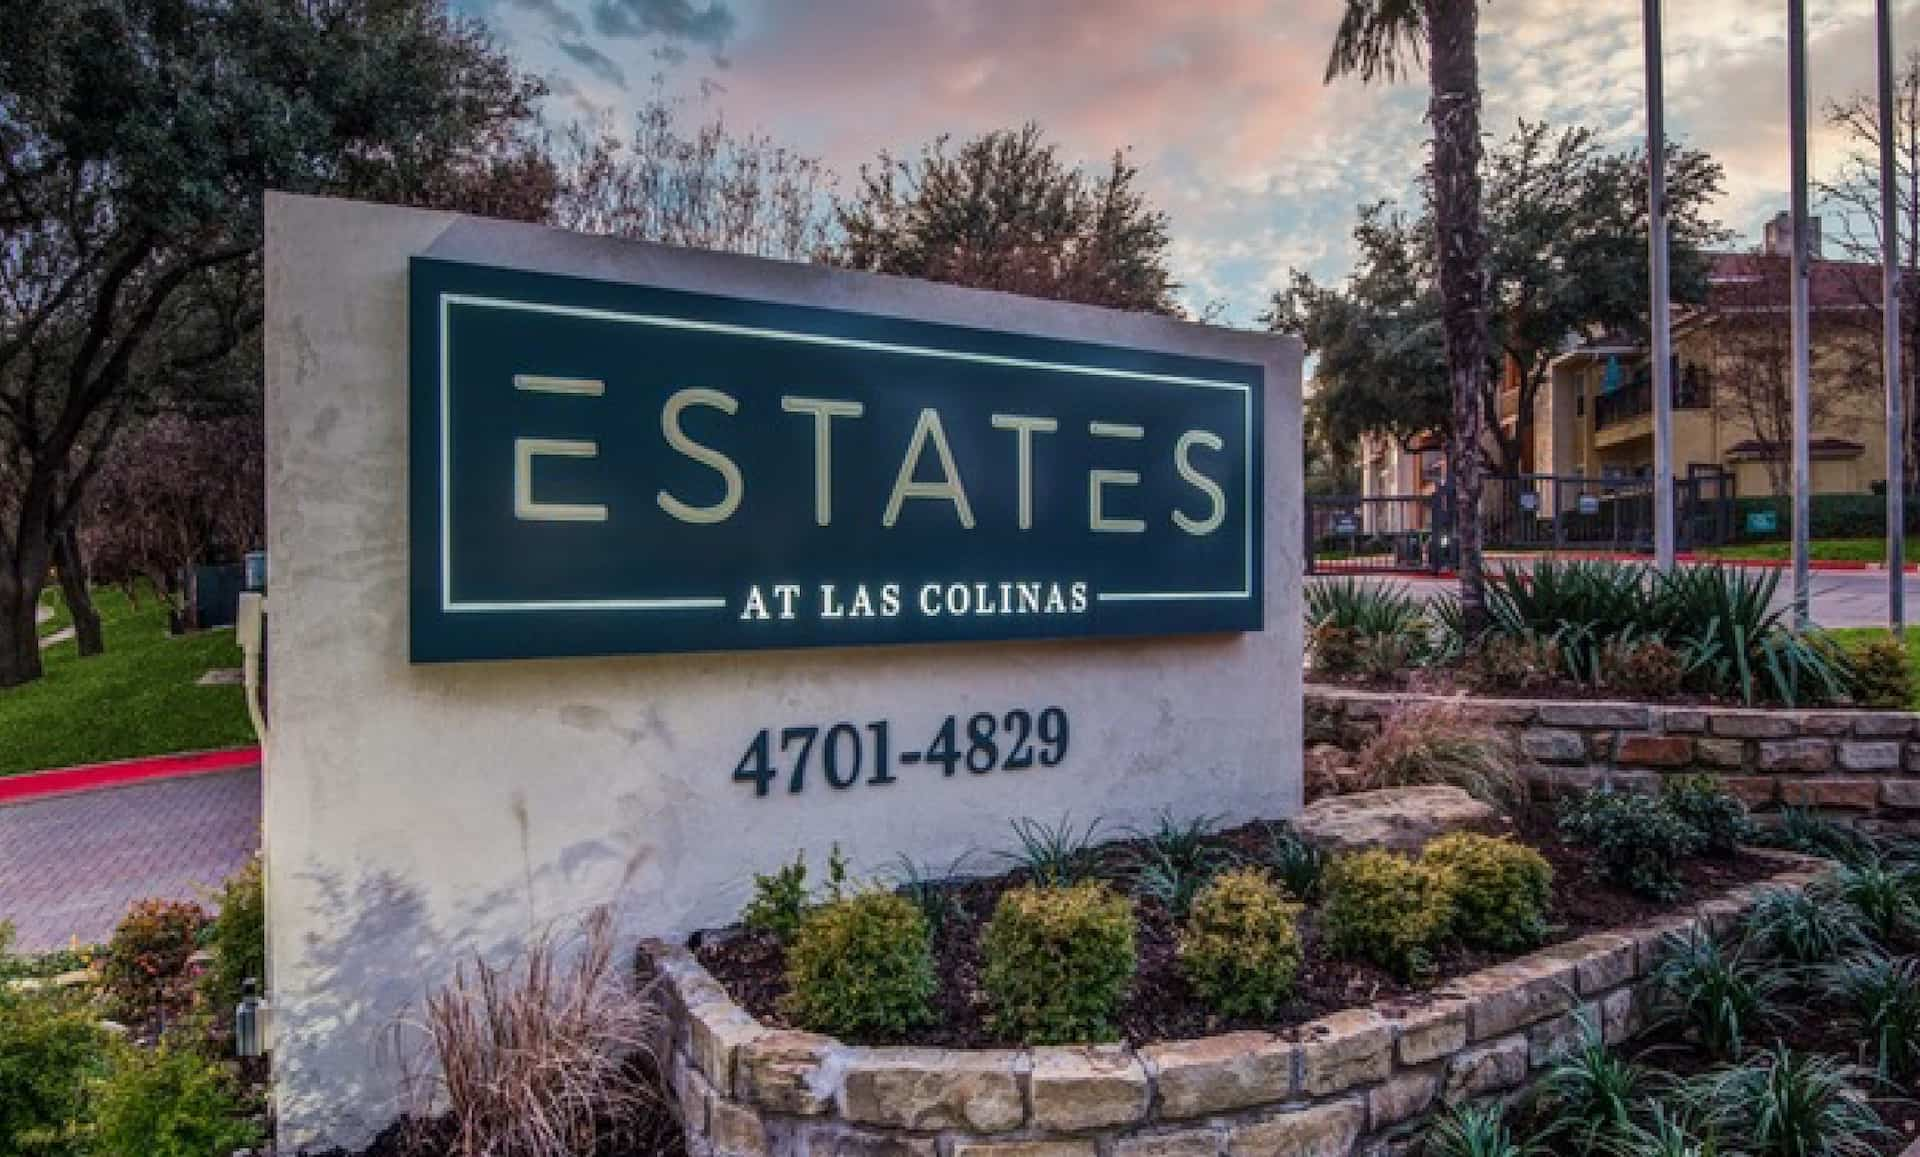 Estates at Las Colinas